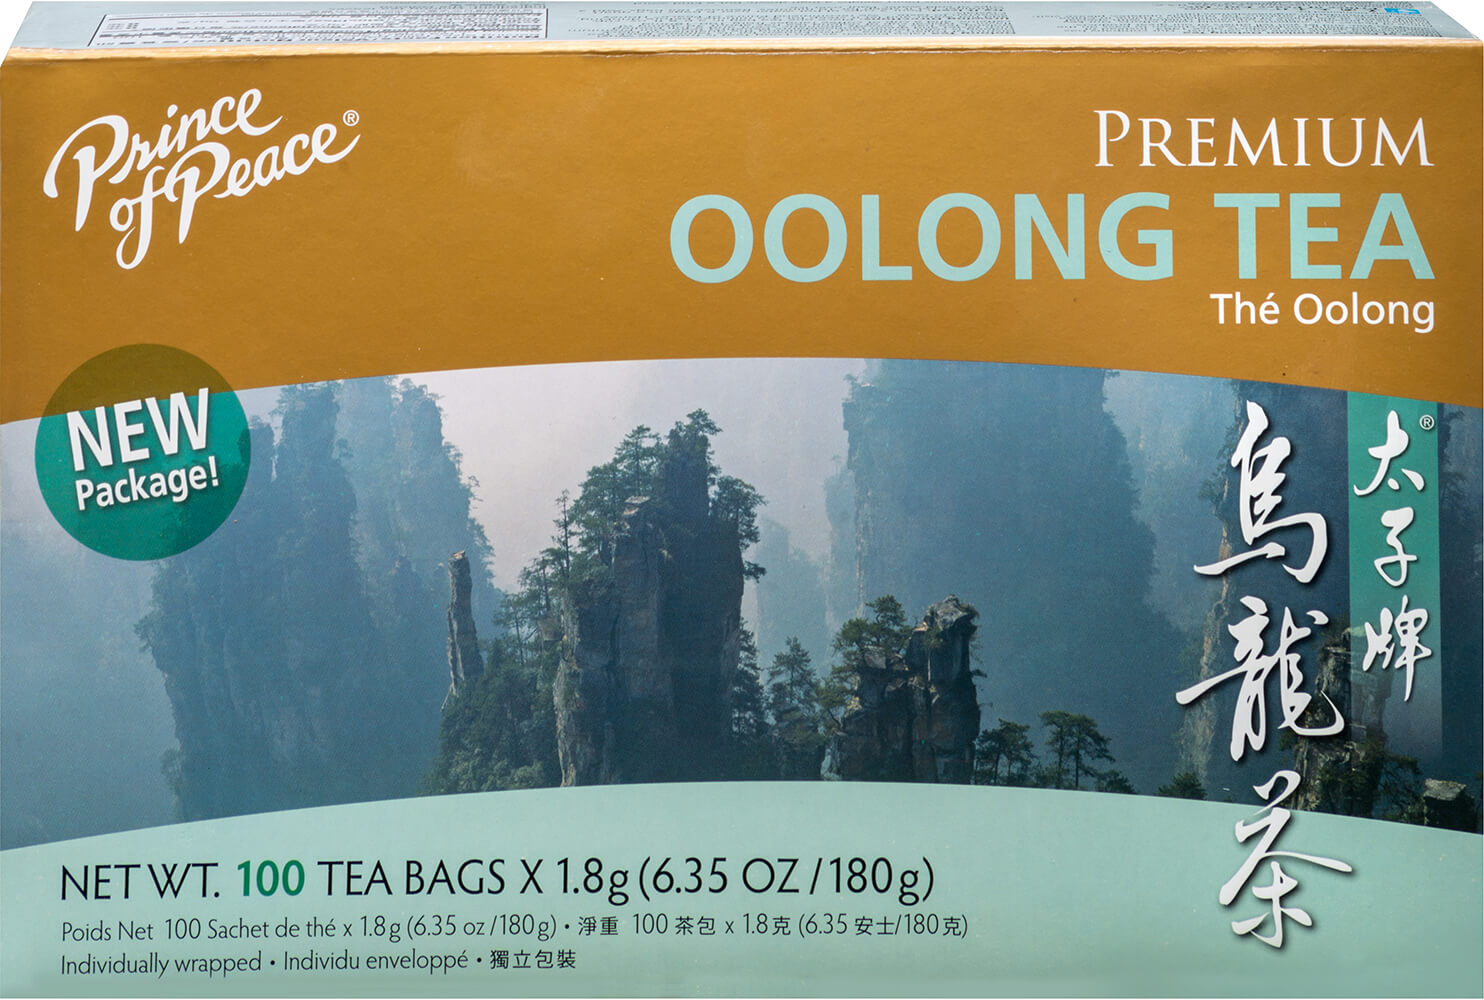 Premium Oolong Tea Thumbnail Alternate Bottle View